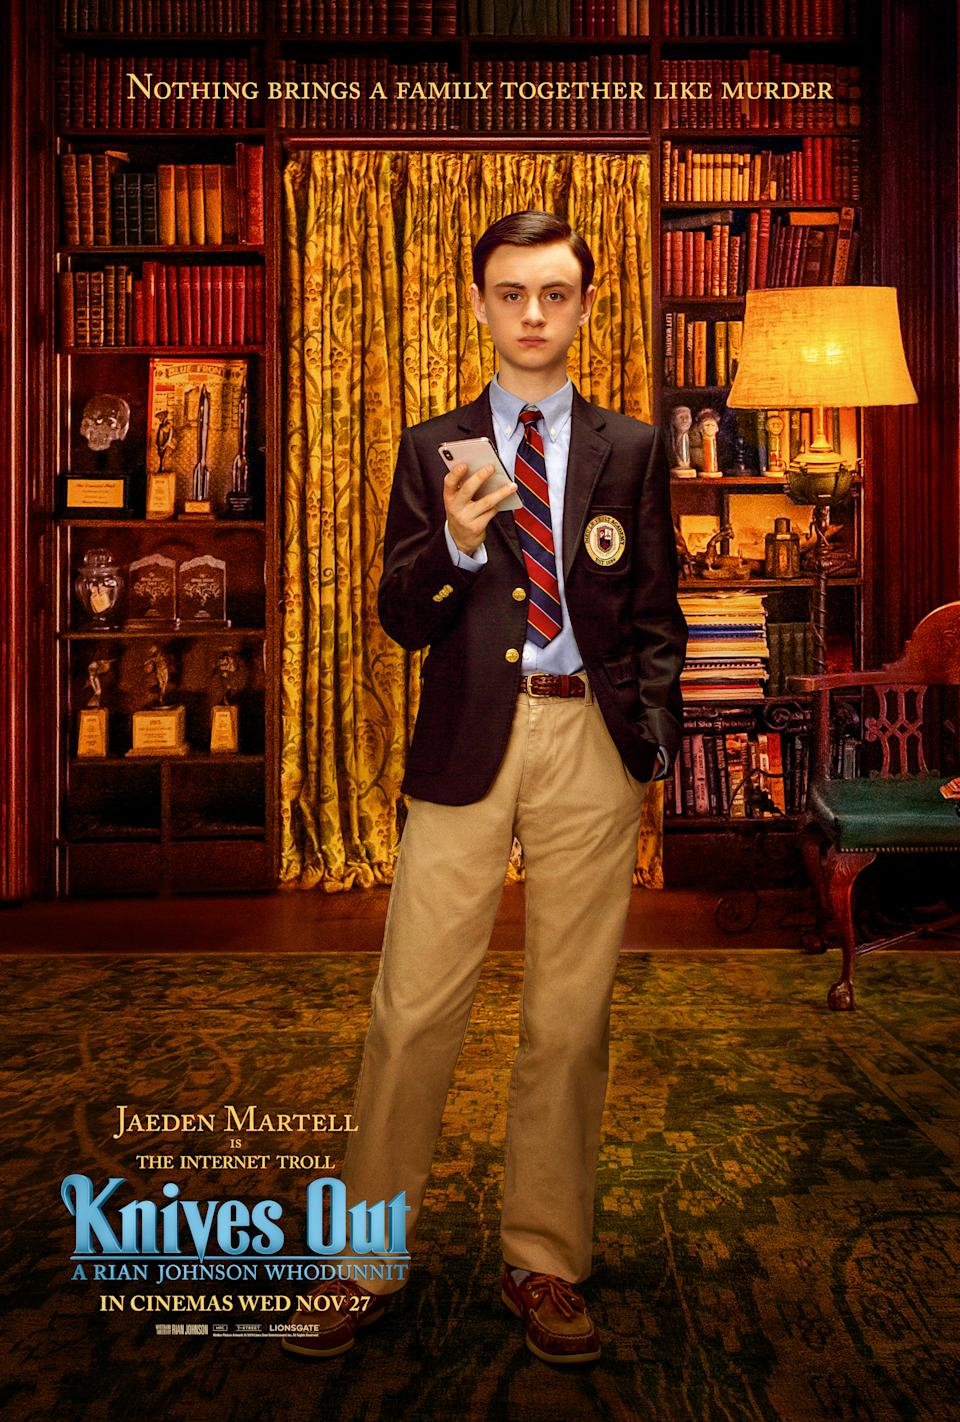 """It: Chapter Two star Jaeden Martell as """"internet troll"""" Jacob Thrombey."""